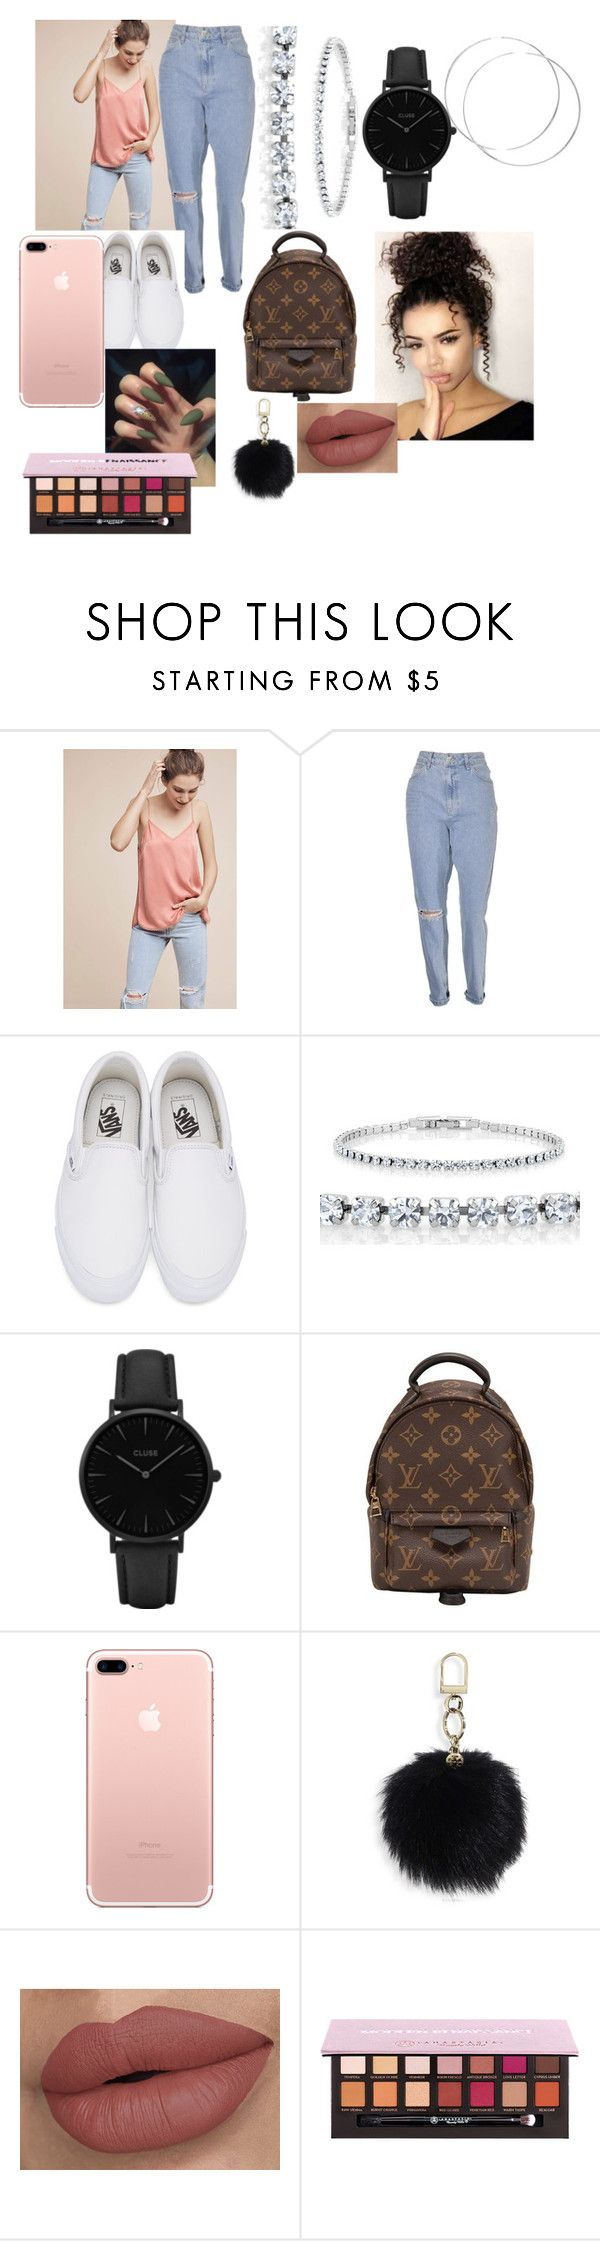 """""""Mom Jeans and Silk"""" by autumnjclark ❤ liked on Polyvore featuring ELOISE, Vans, CLUSE, Louis Vuitton and Tory Burch"""